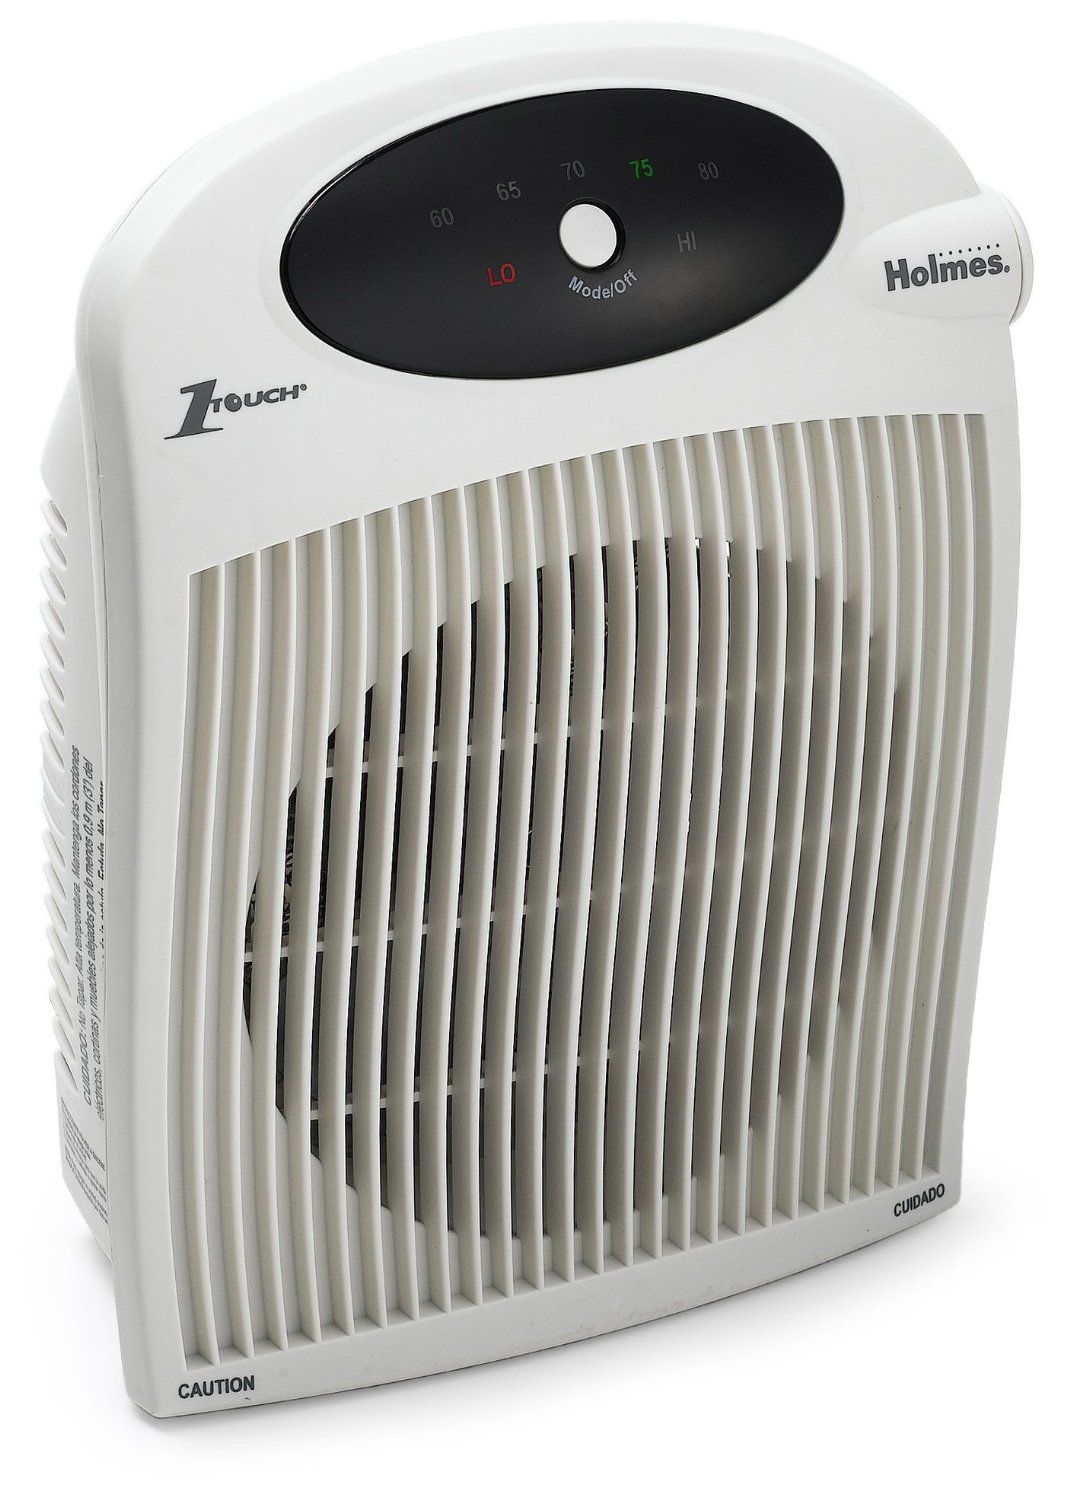 Small Space Heater For Bathroom. Amazon Com Holmes Heater With 1touch Control And Bathroom Safe Plug Home Kitchen